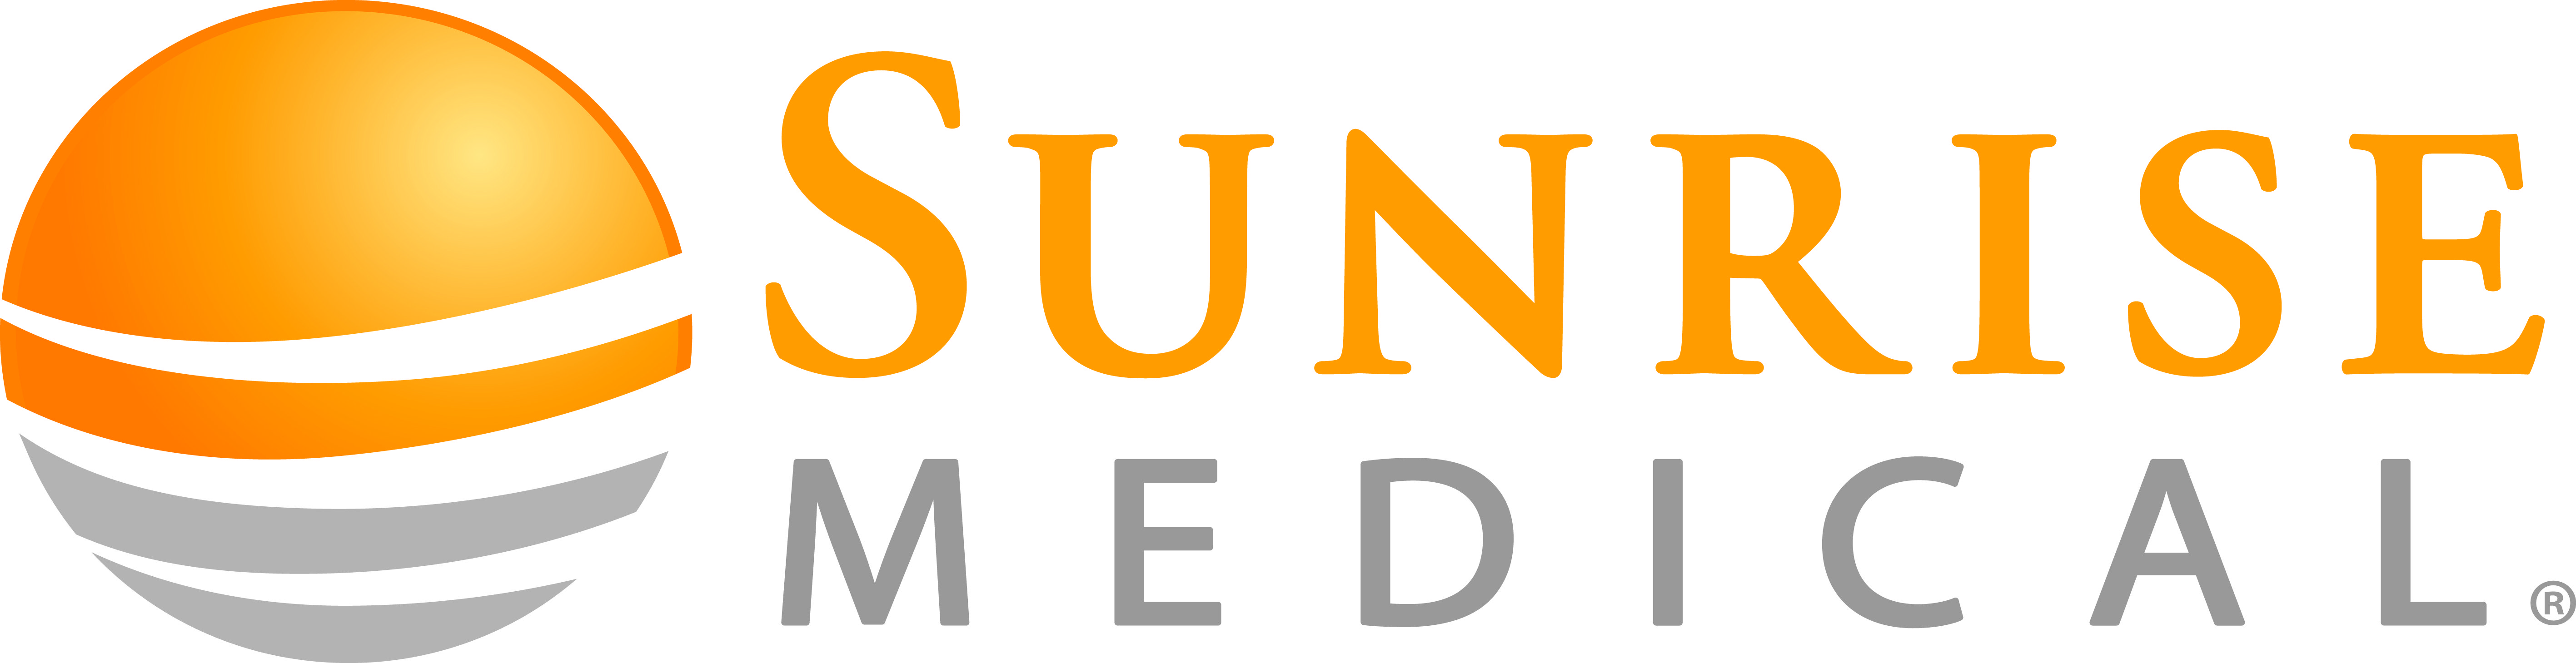 SUNRISE MEDICAL-logo